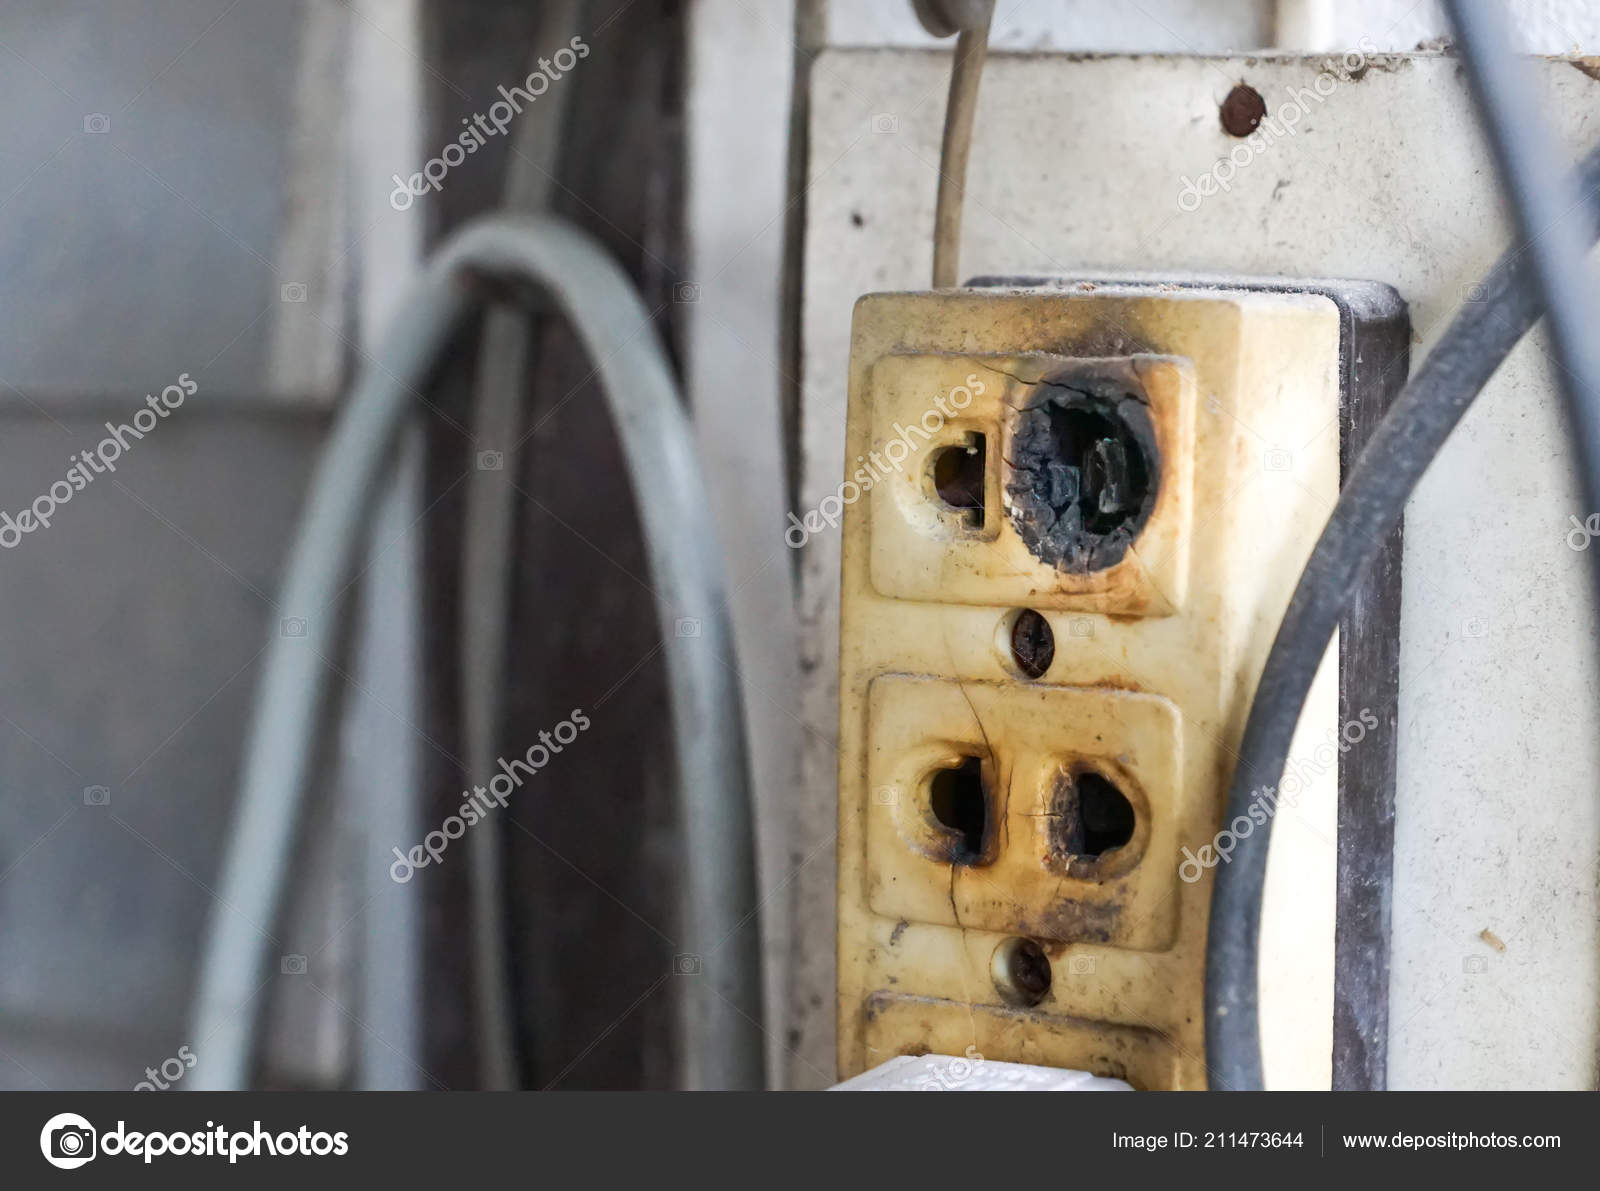 Safety Damaged Wiring On Diagram Power Outlet Electrical Electricity House Stock Photo Intrinsically Safe